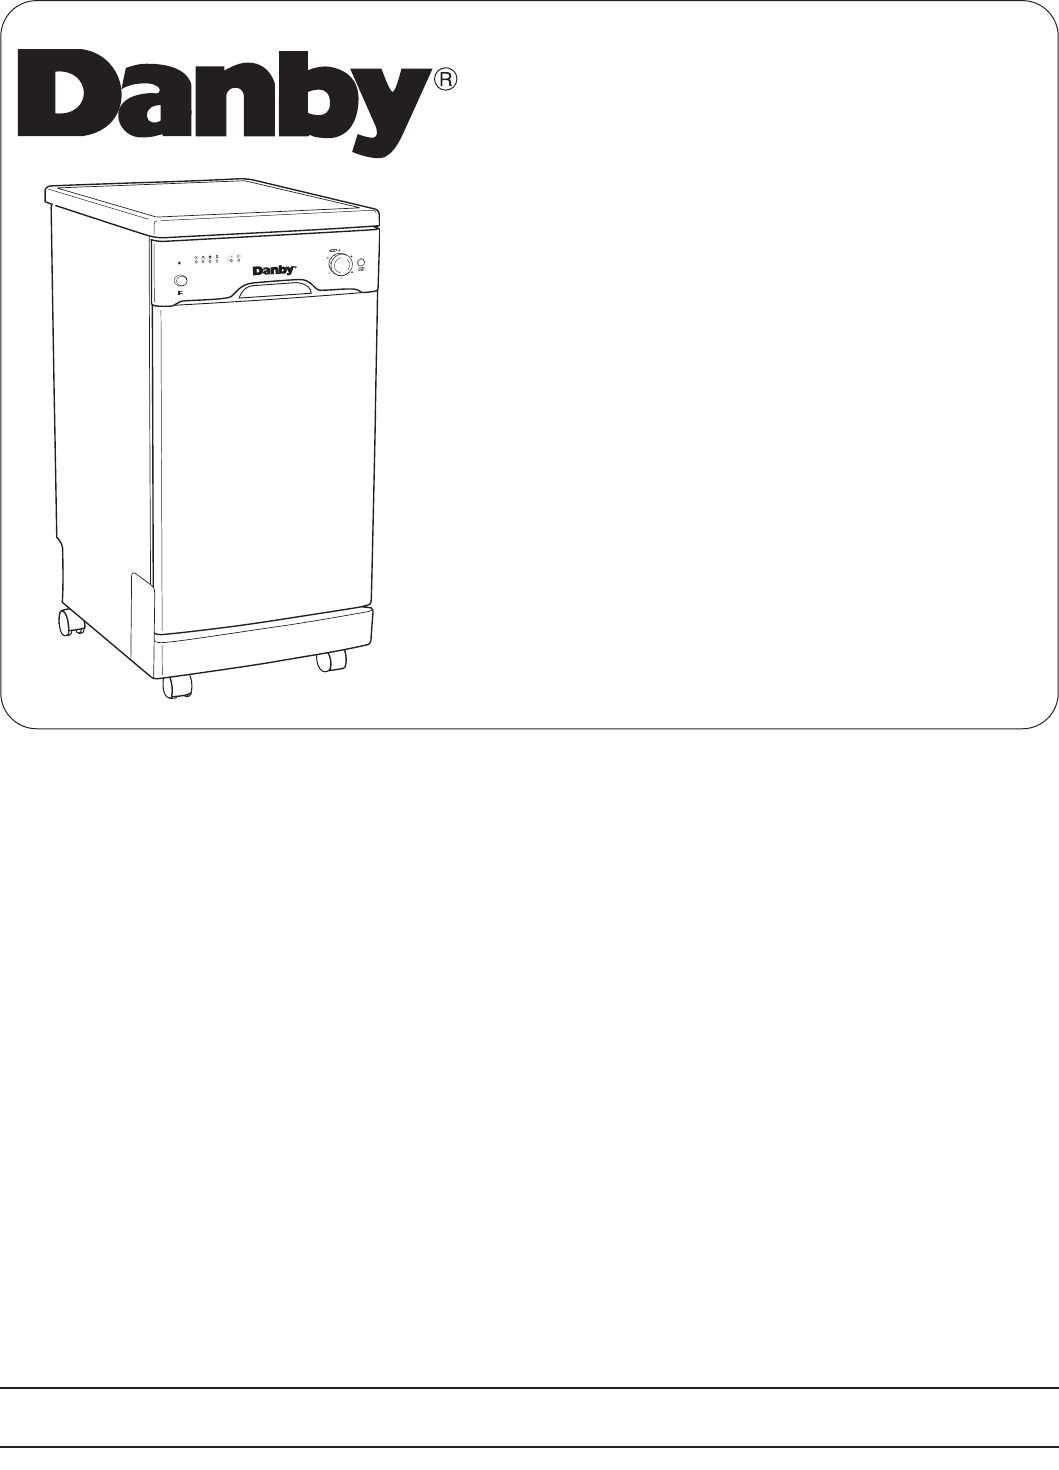 Danby Dishwasher DDW1899WP User Guide | ManualsOnline.com